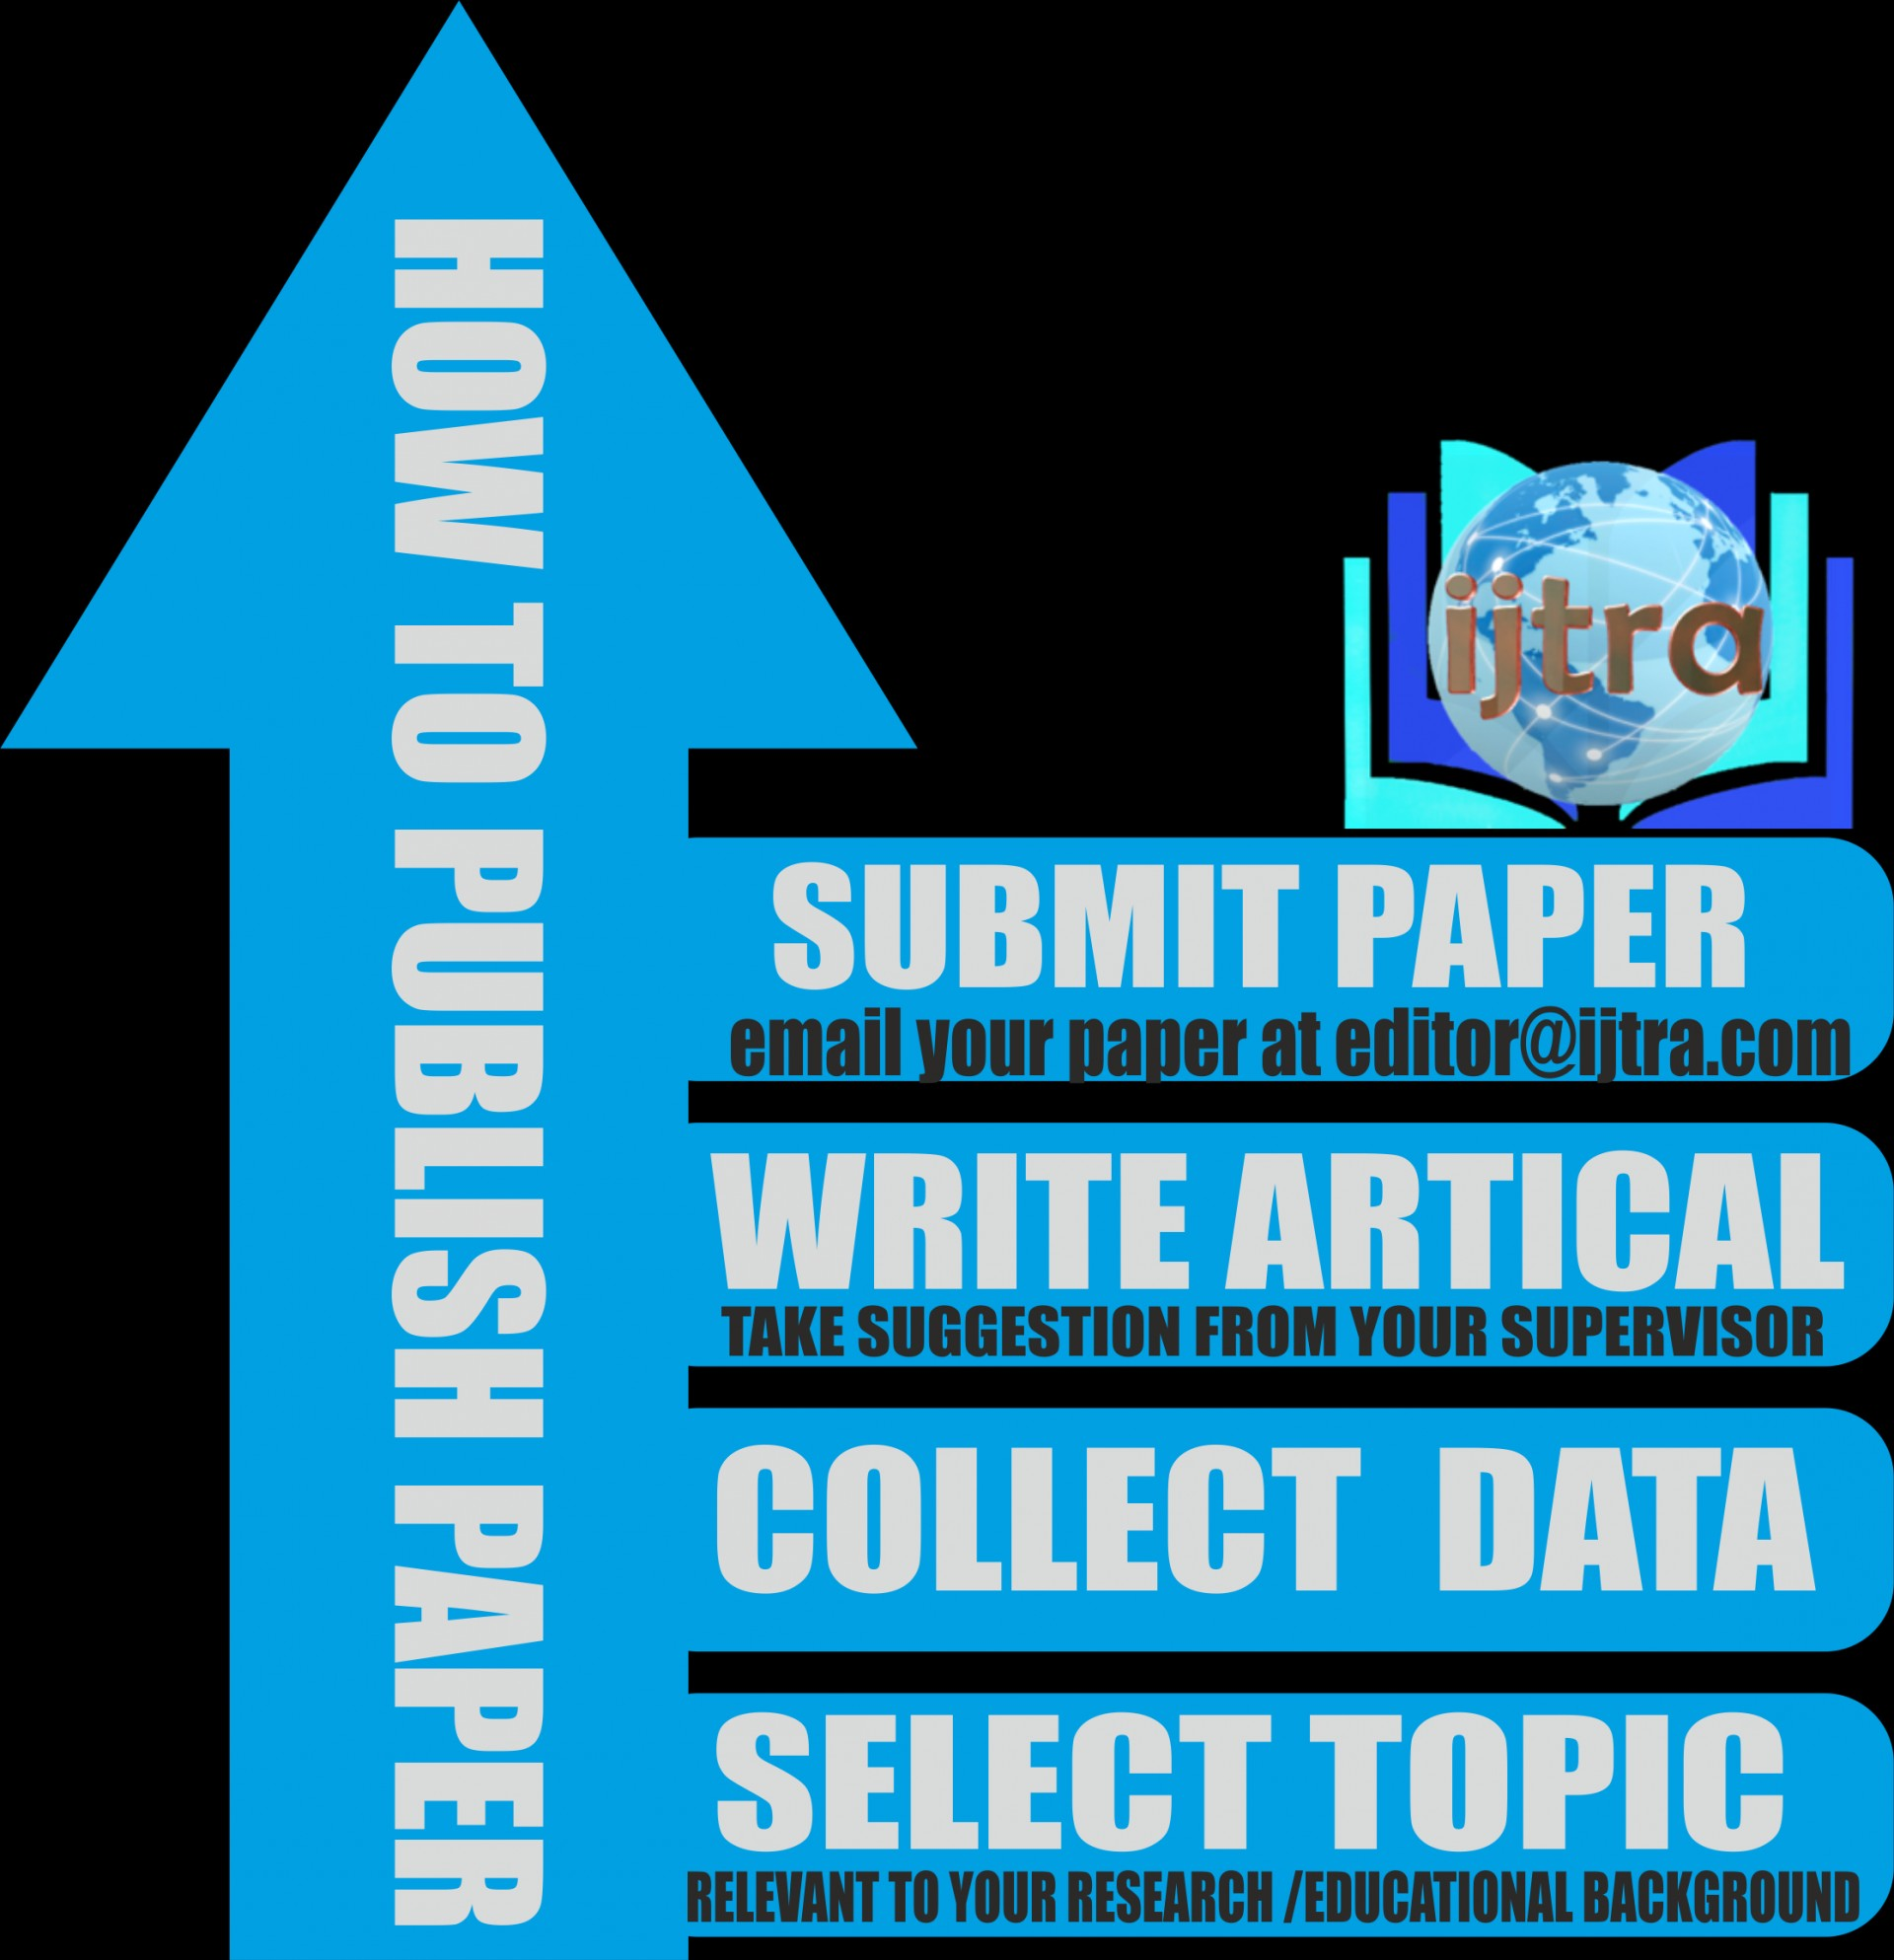 023 Ijtra Author Ins Research Paper Breathtaking Editor Software Free Editorial 1920